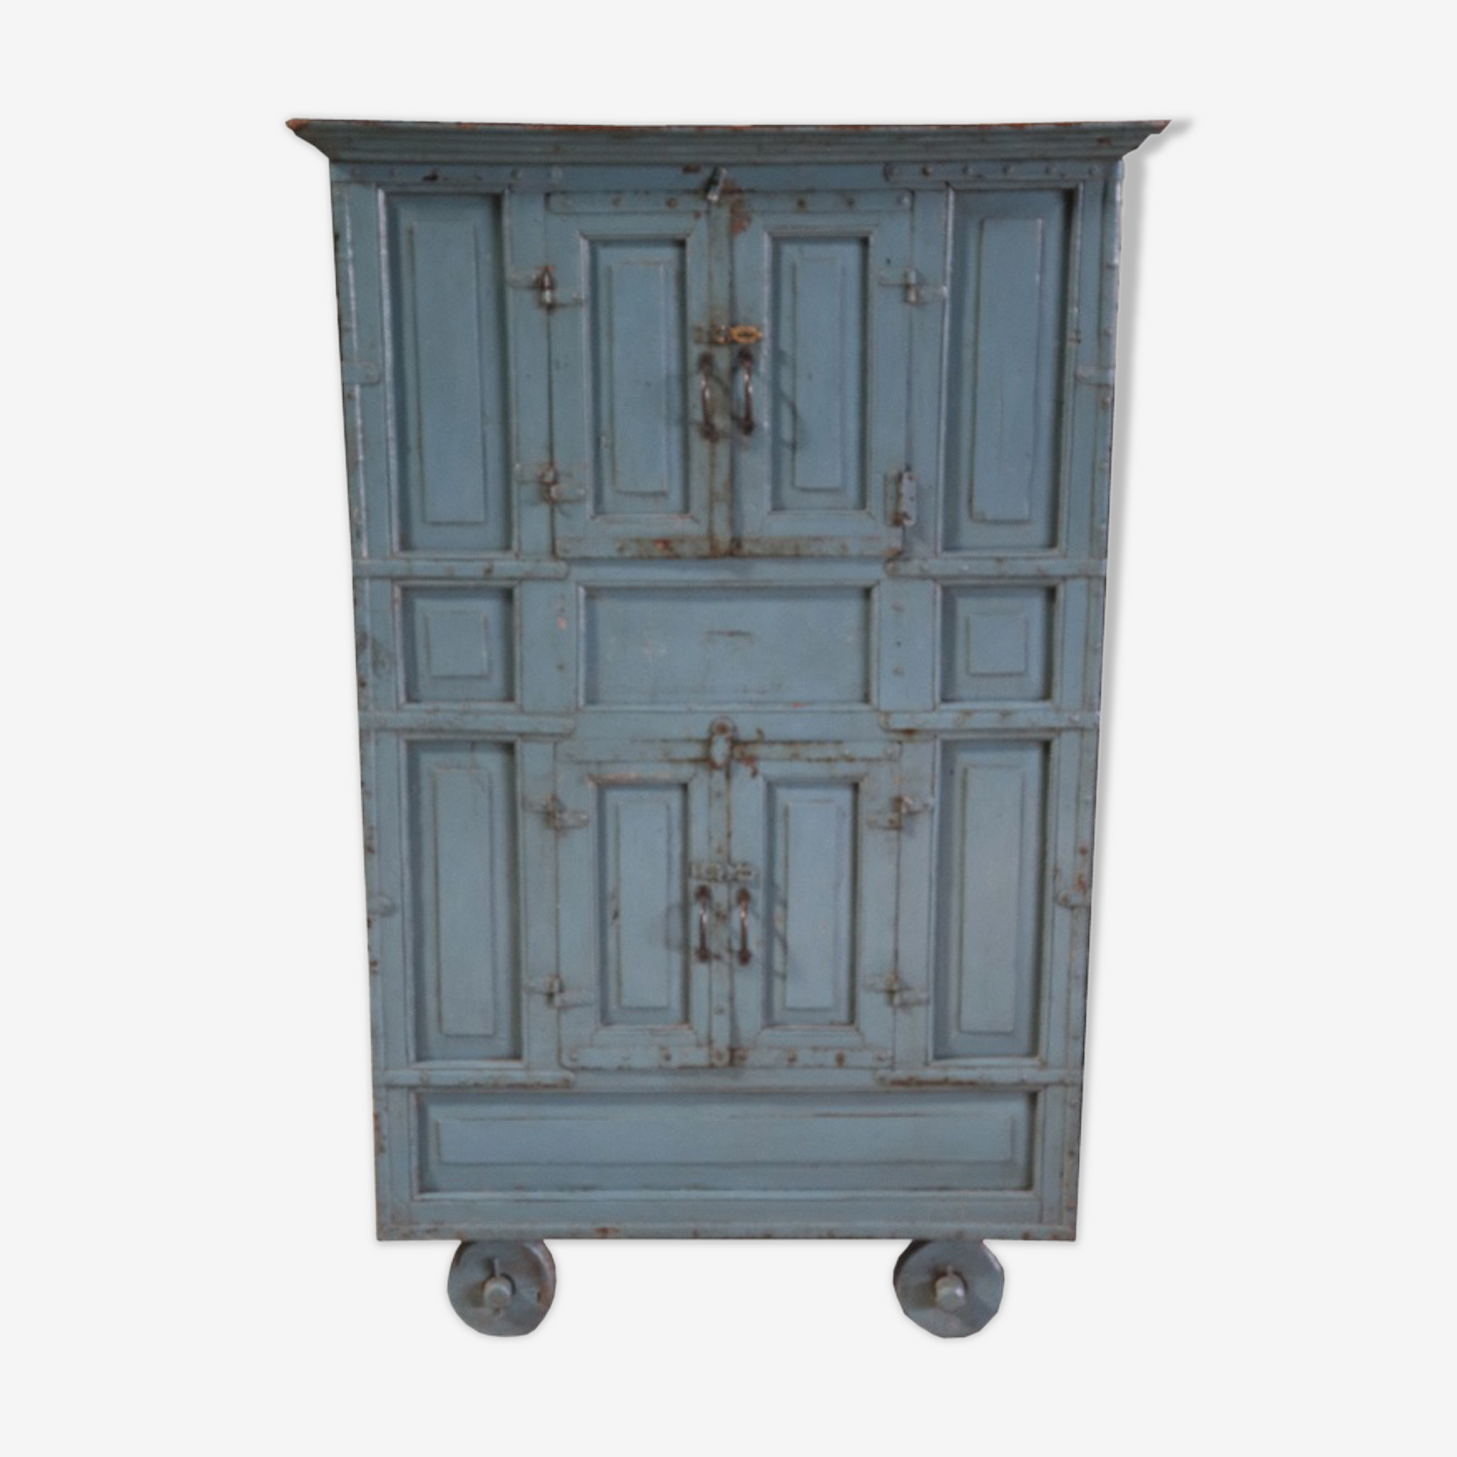 Cabinet grey blue Hutch on wheels with hatches secret old teak